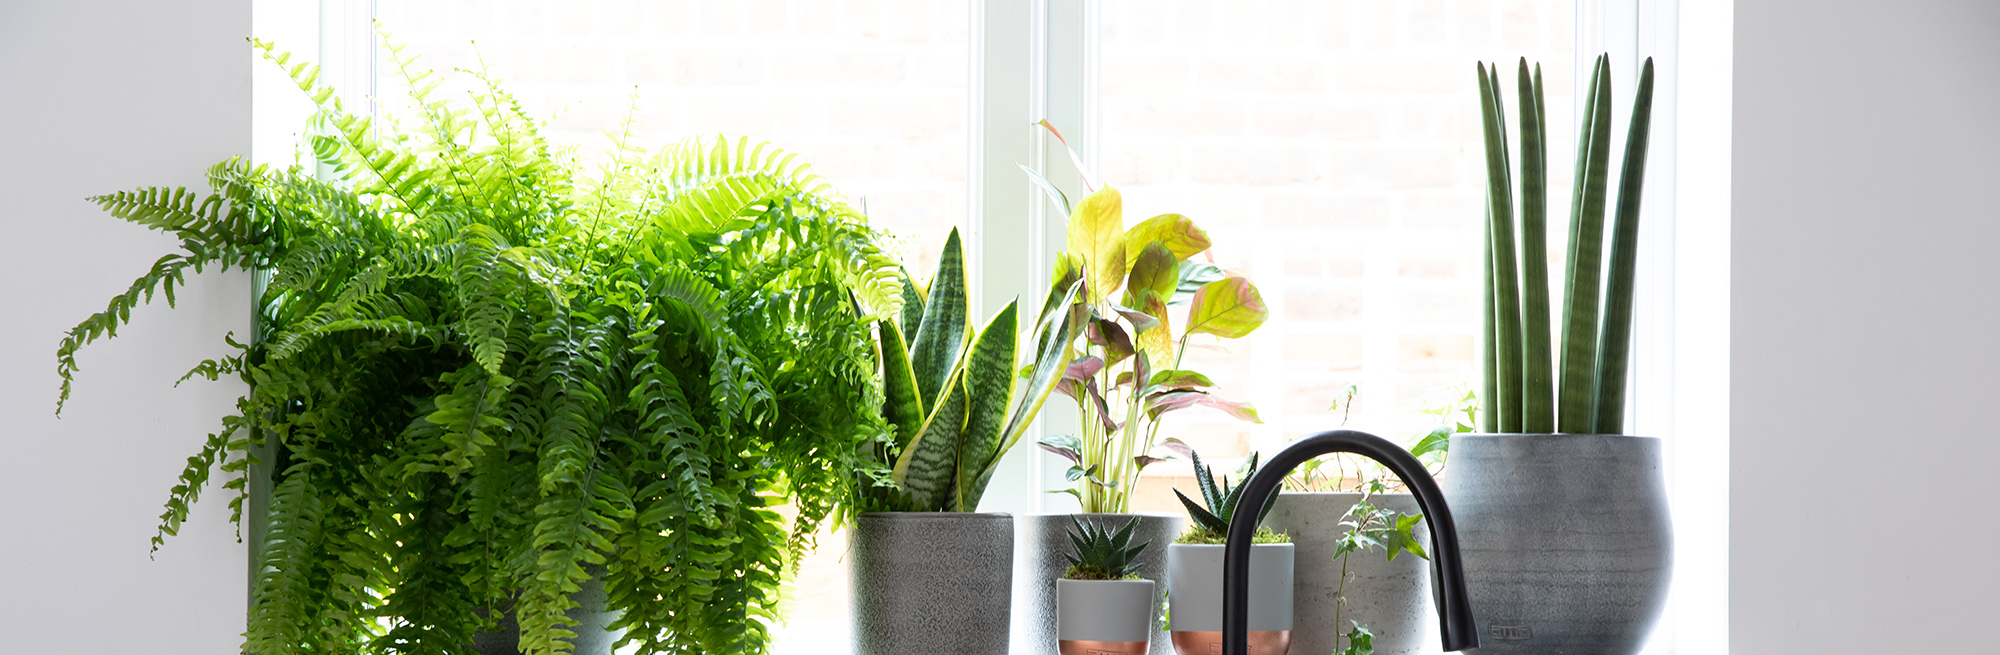 fern, sansevieria and other plants on kitchen windowsill